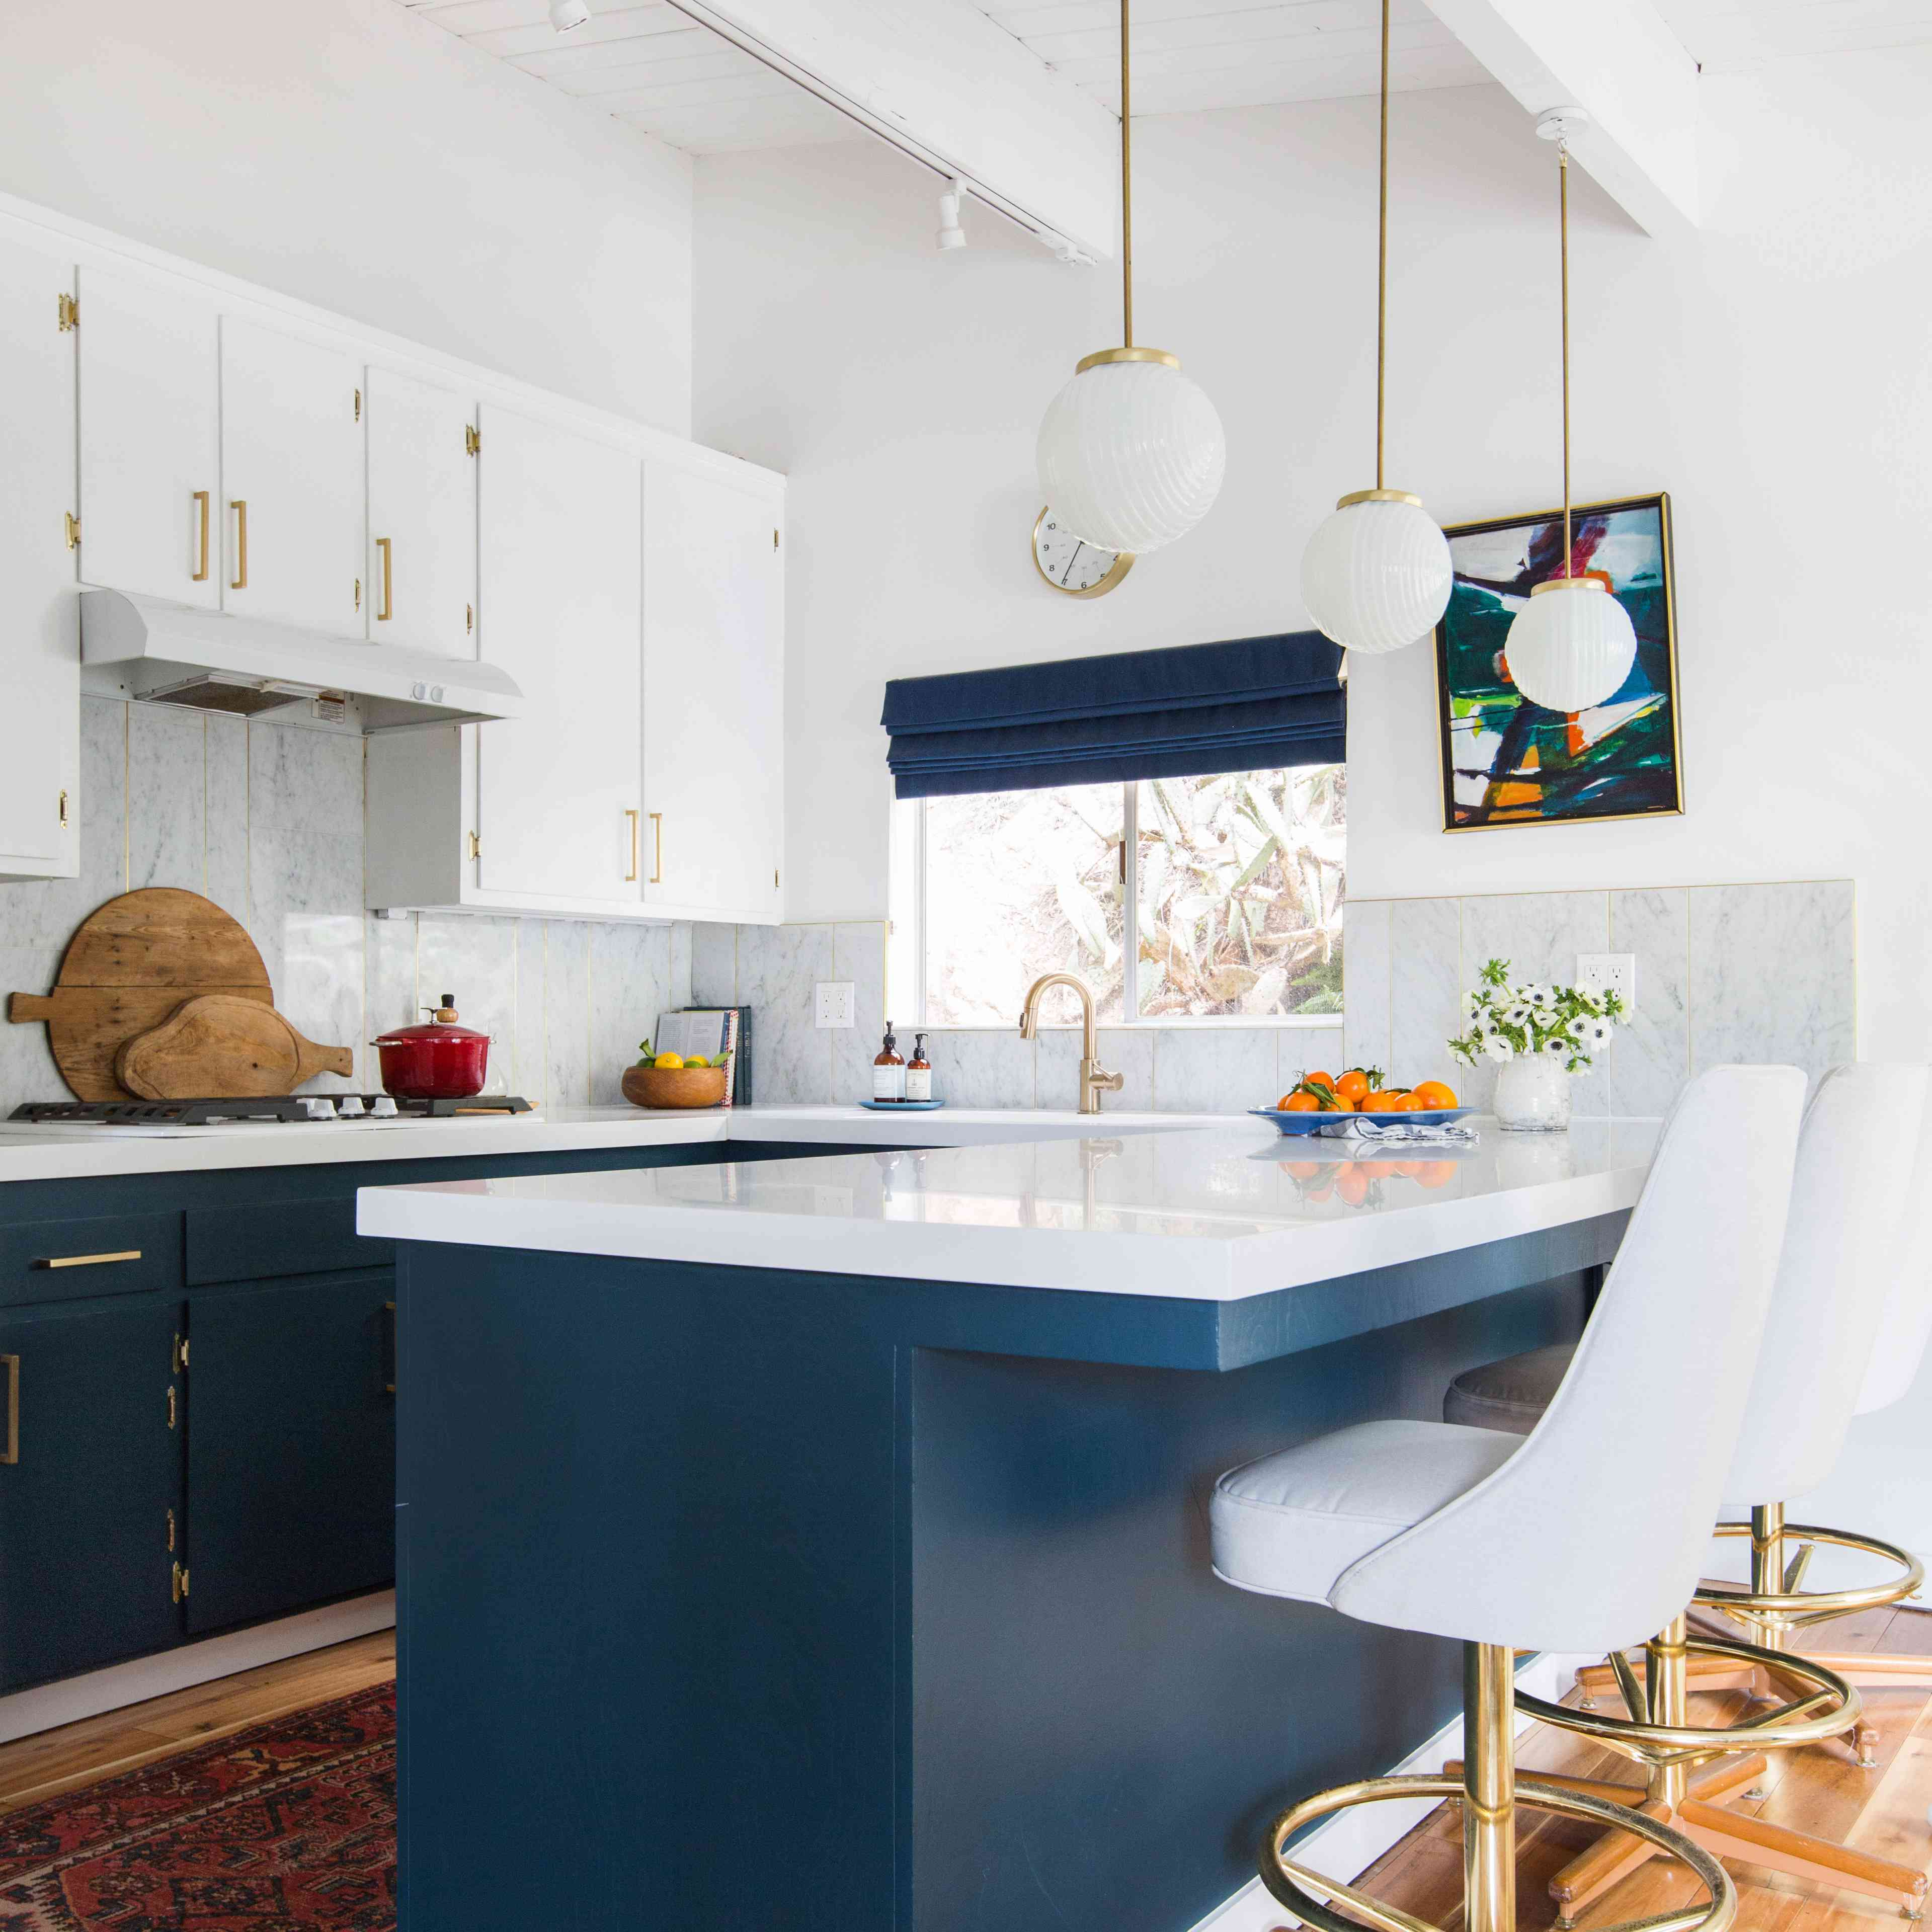 kitchen with blue and white cabinets and blue window treatment